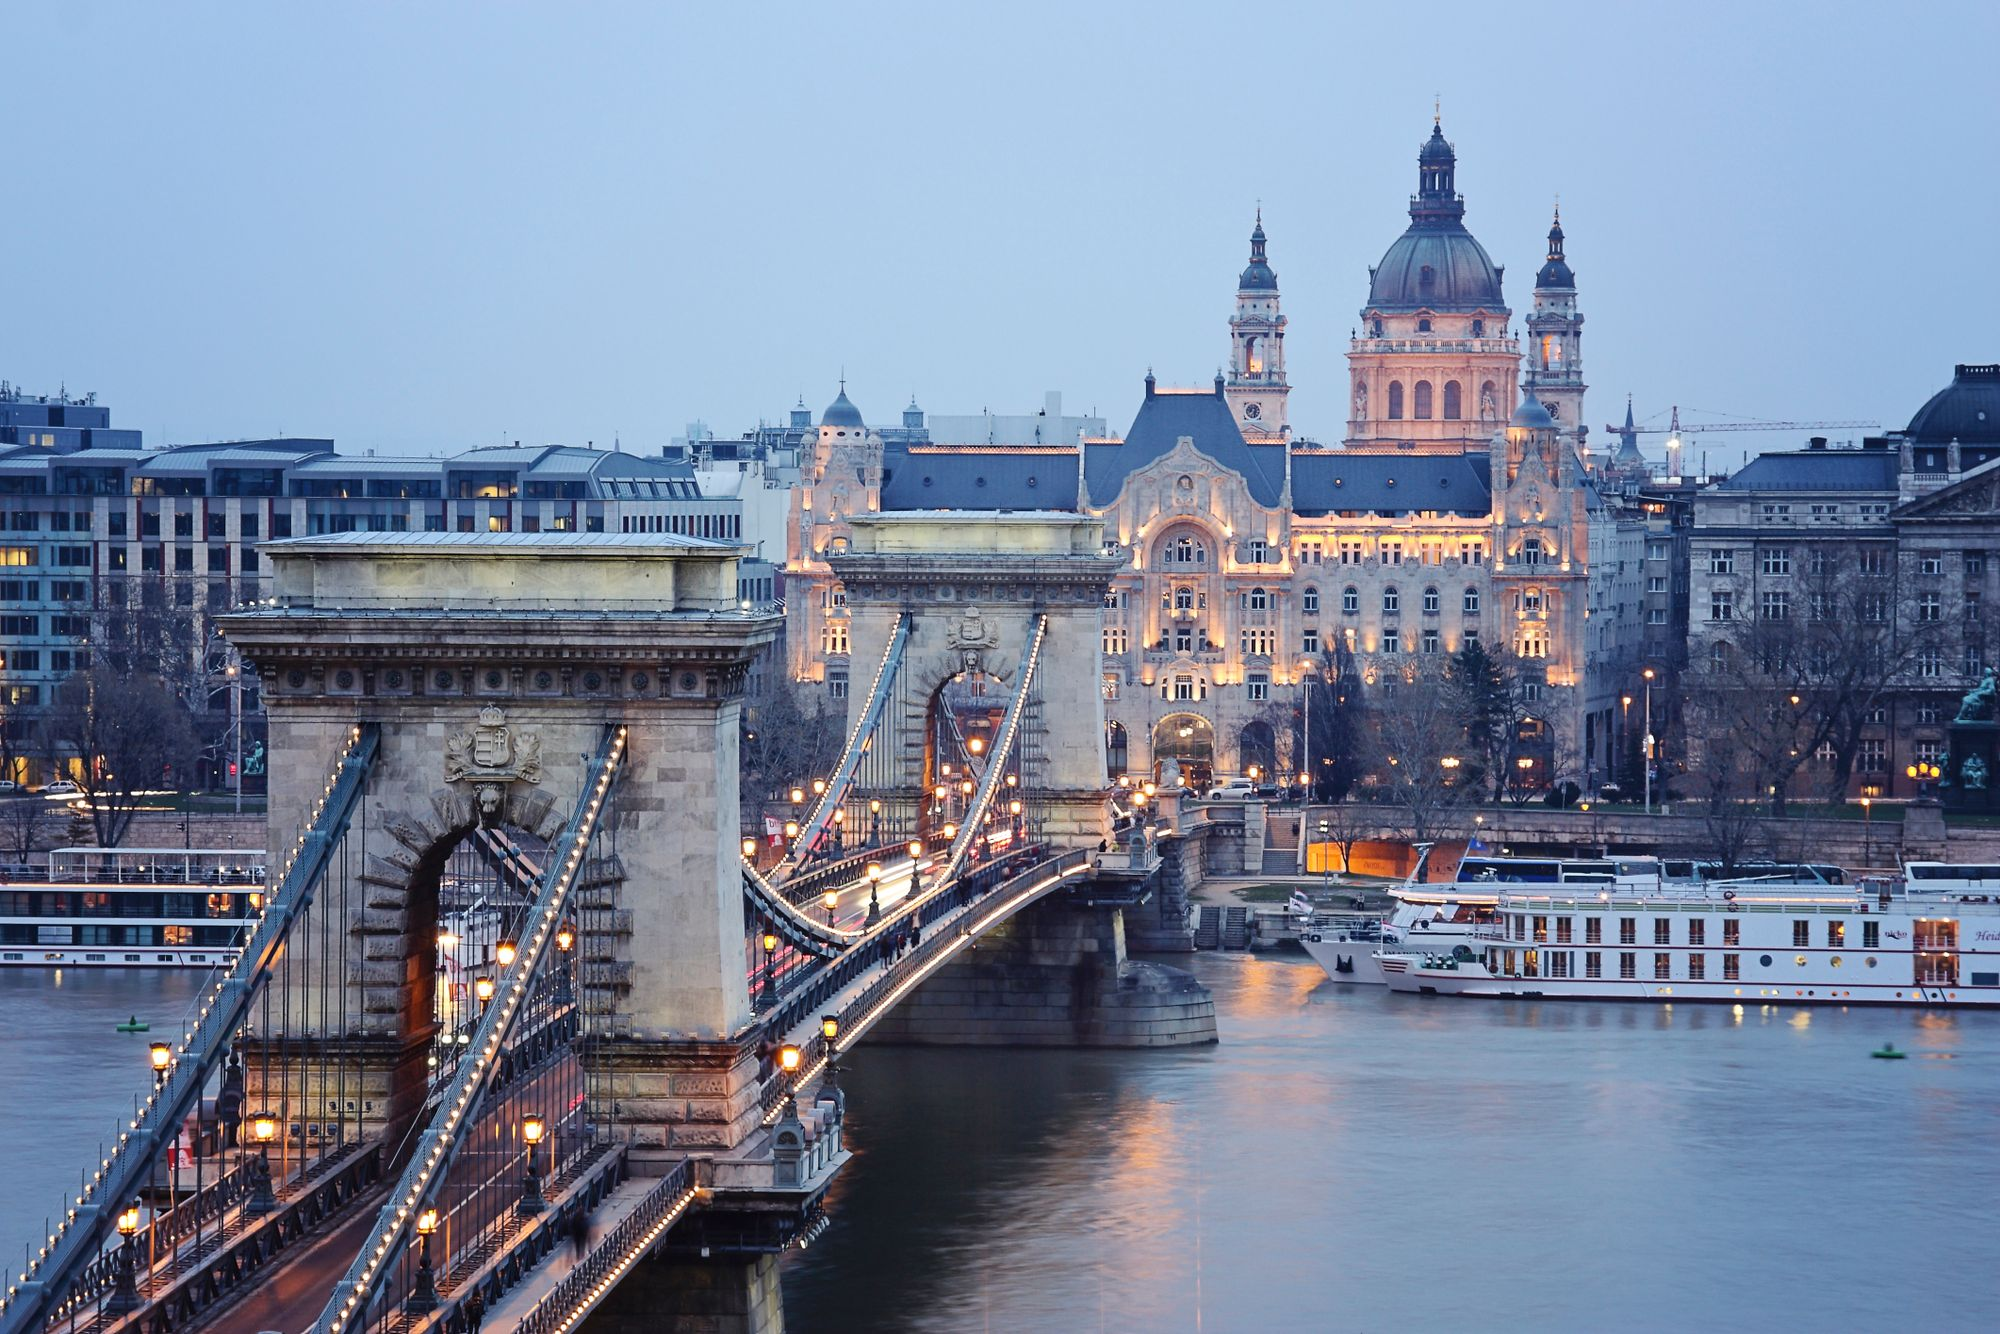 view of the Chain Bridge from the Buda side in Budapest